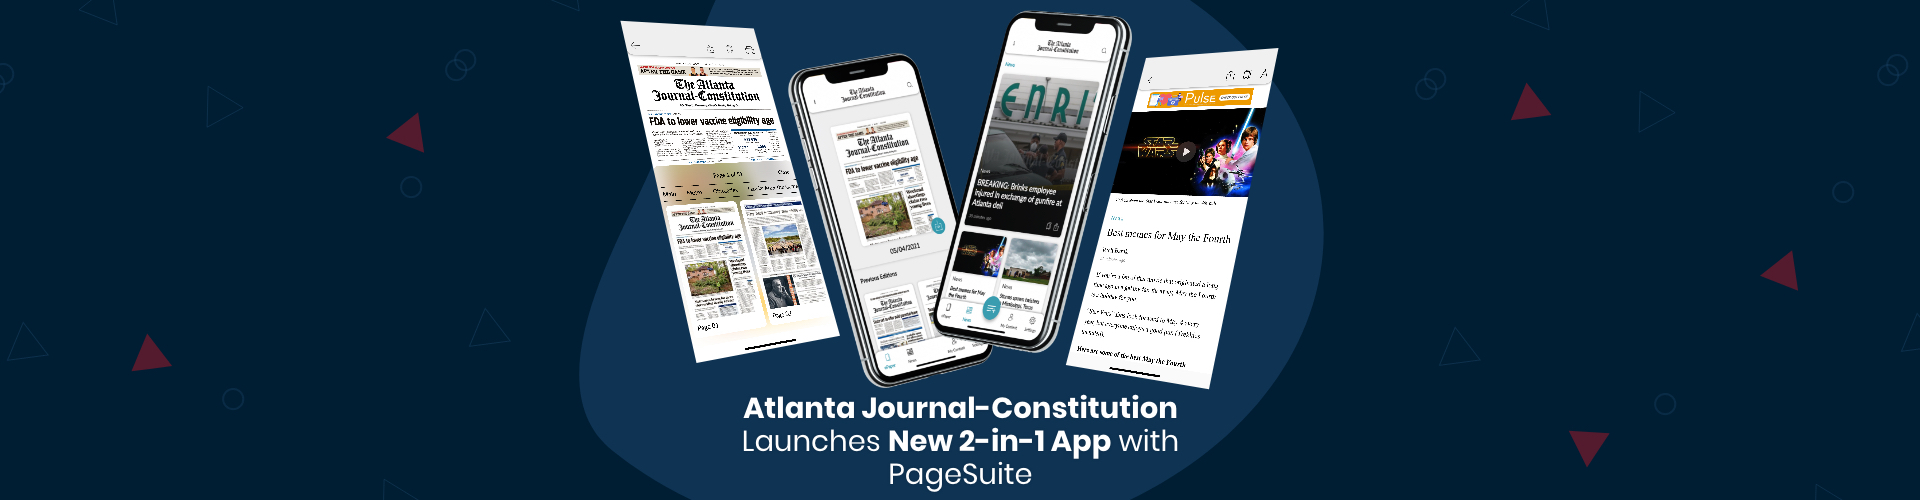 Image of Press Release: Atlanta Journal-Constitution Launches New 2-in-1 App with PageSuite